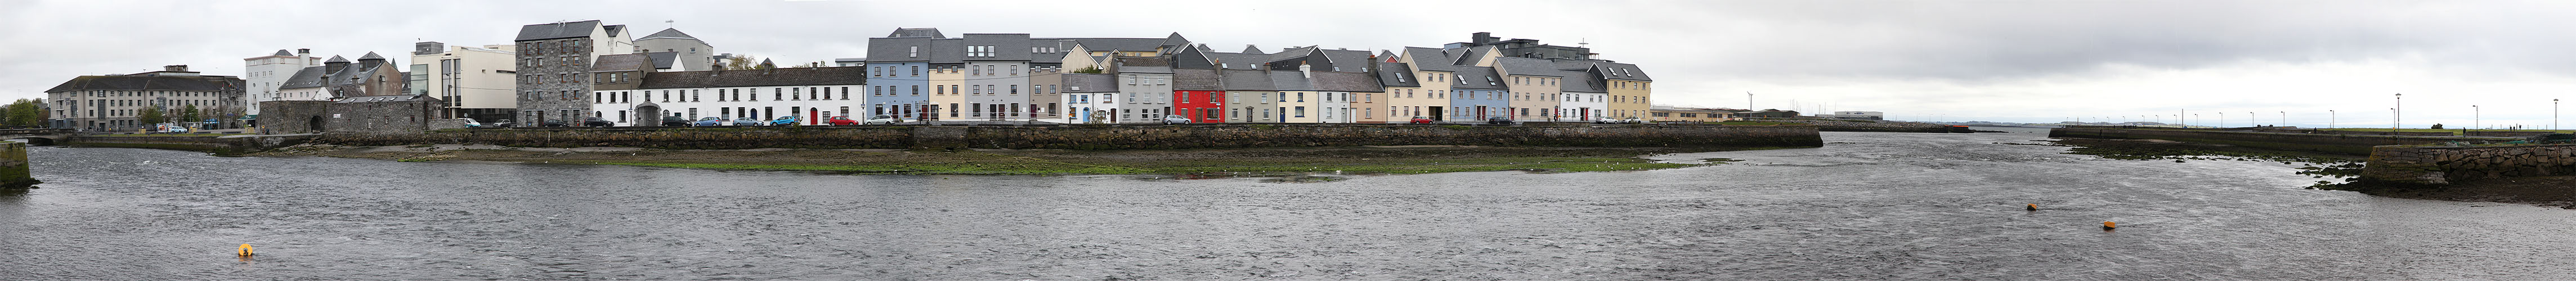 galway-500